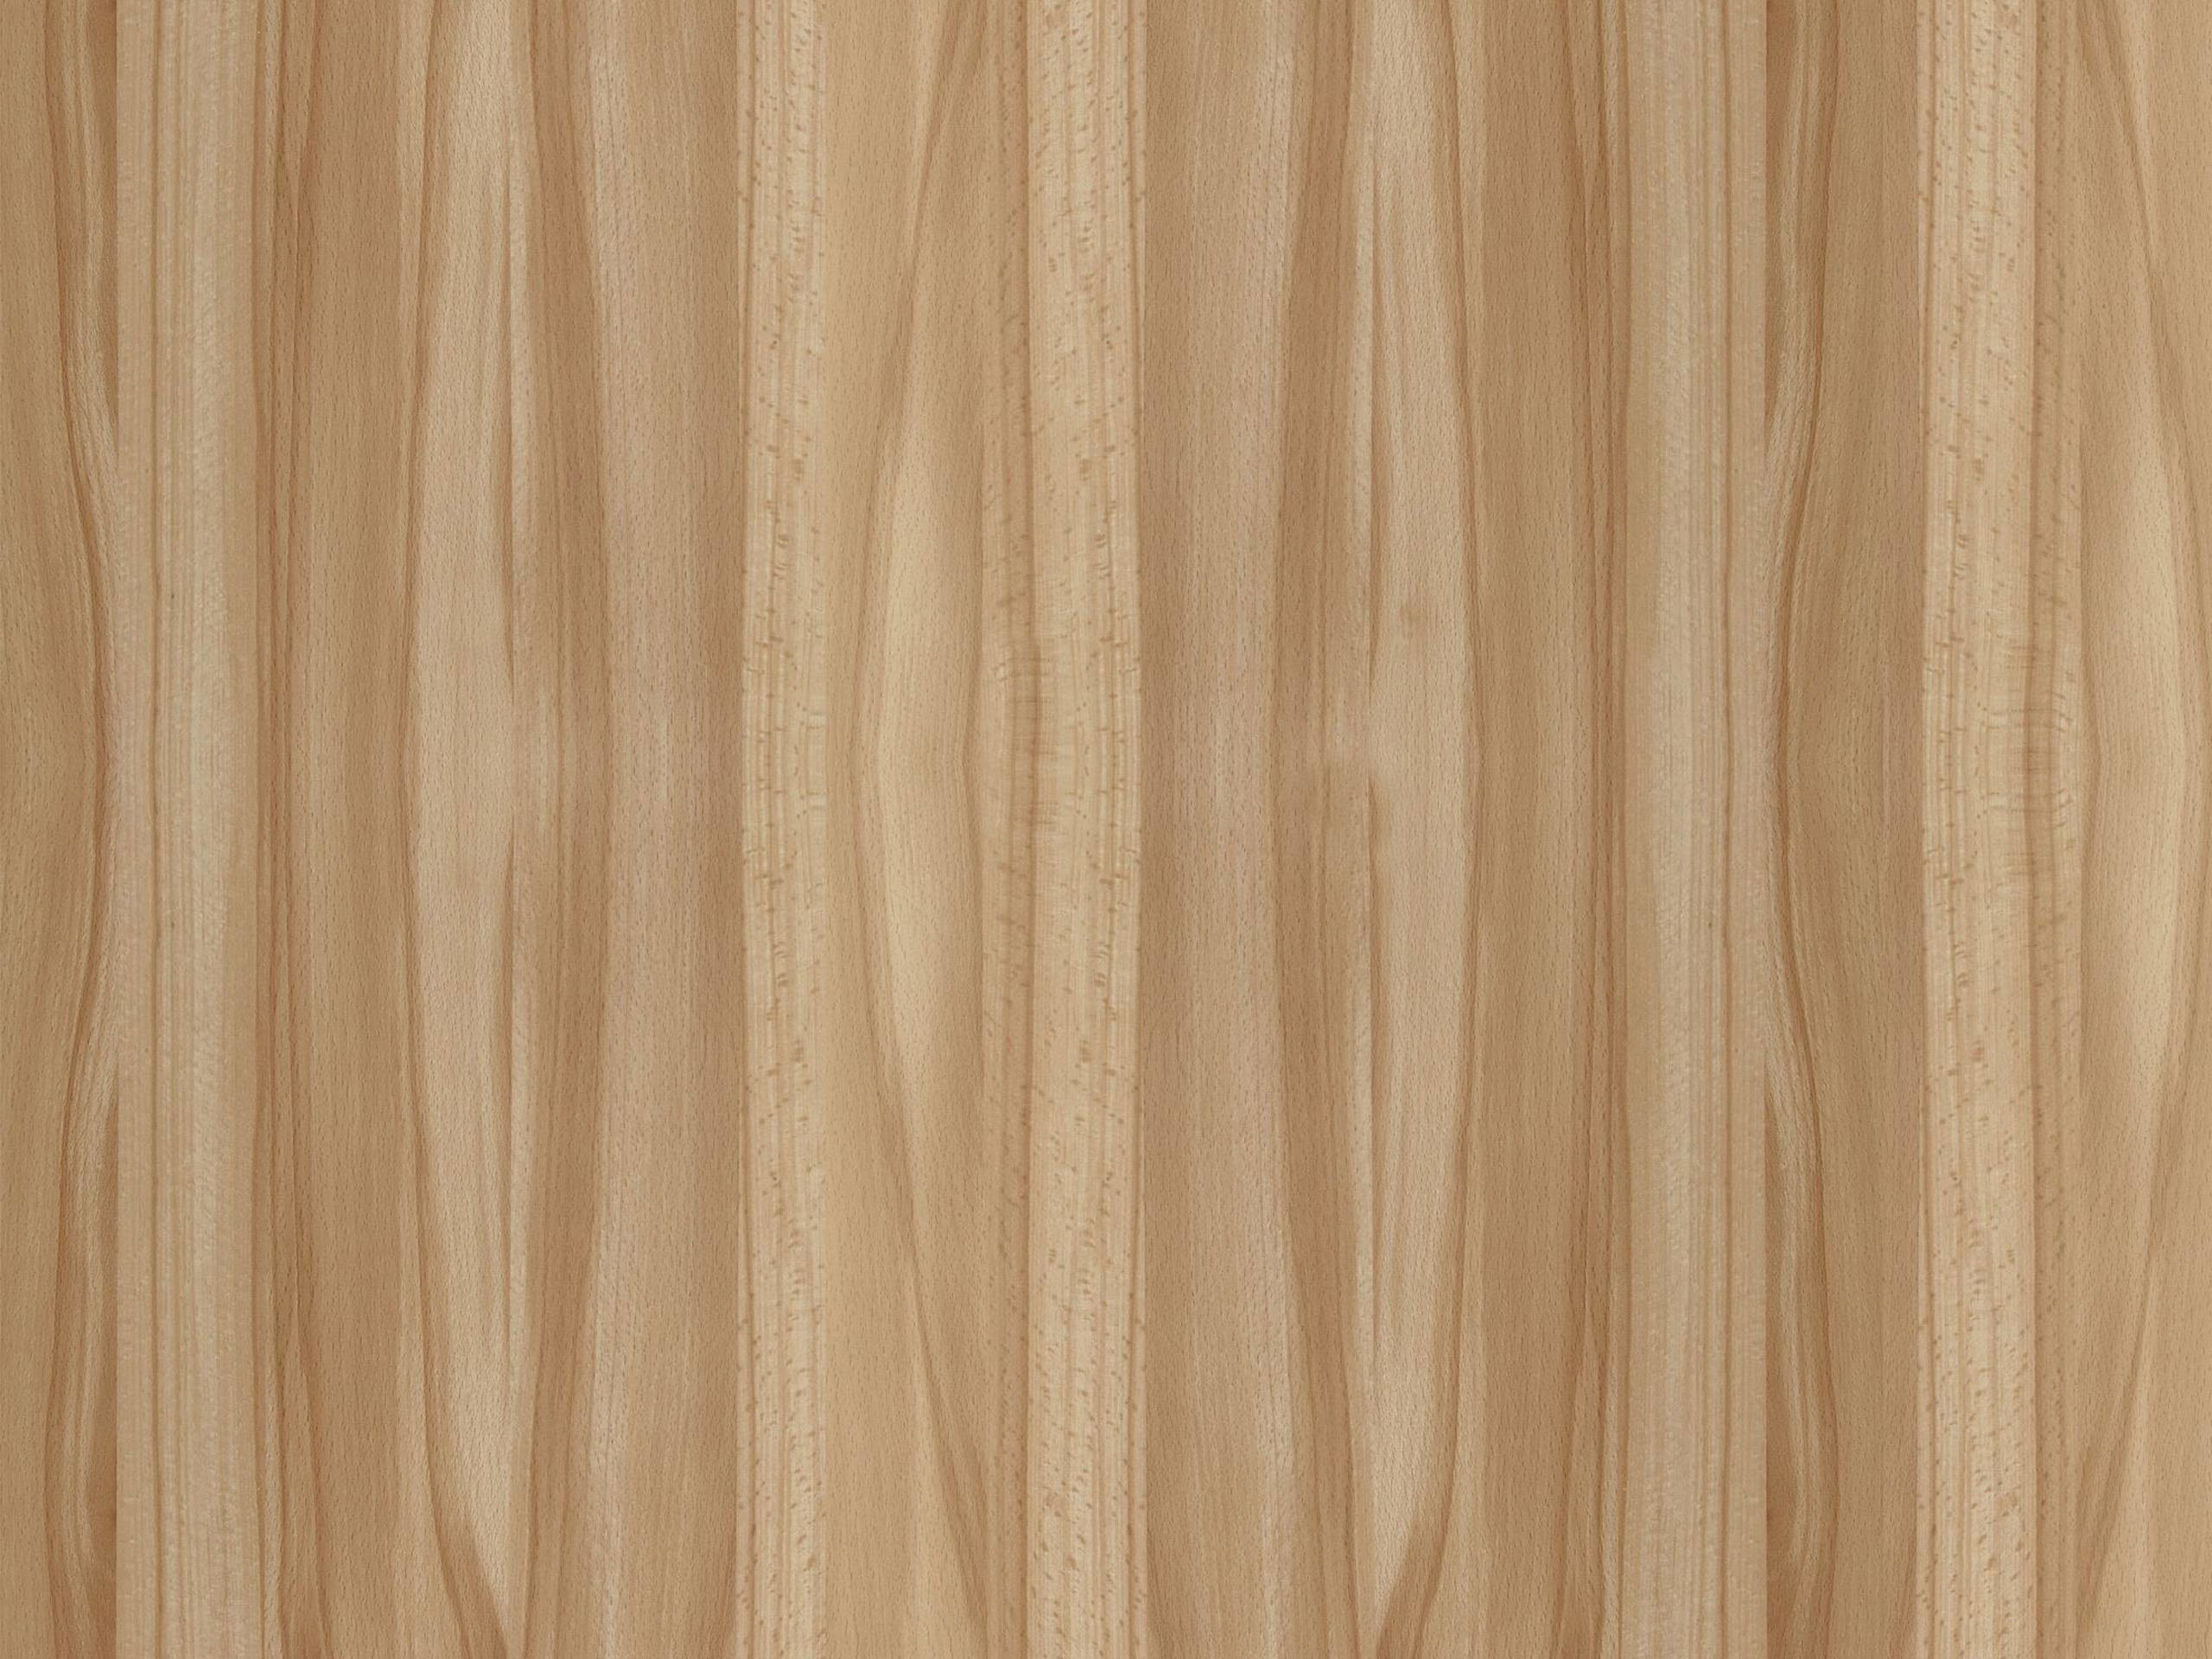 2560x1920 Wallpapers For > Light Brown Wood Wallpaper